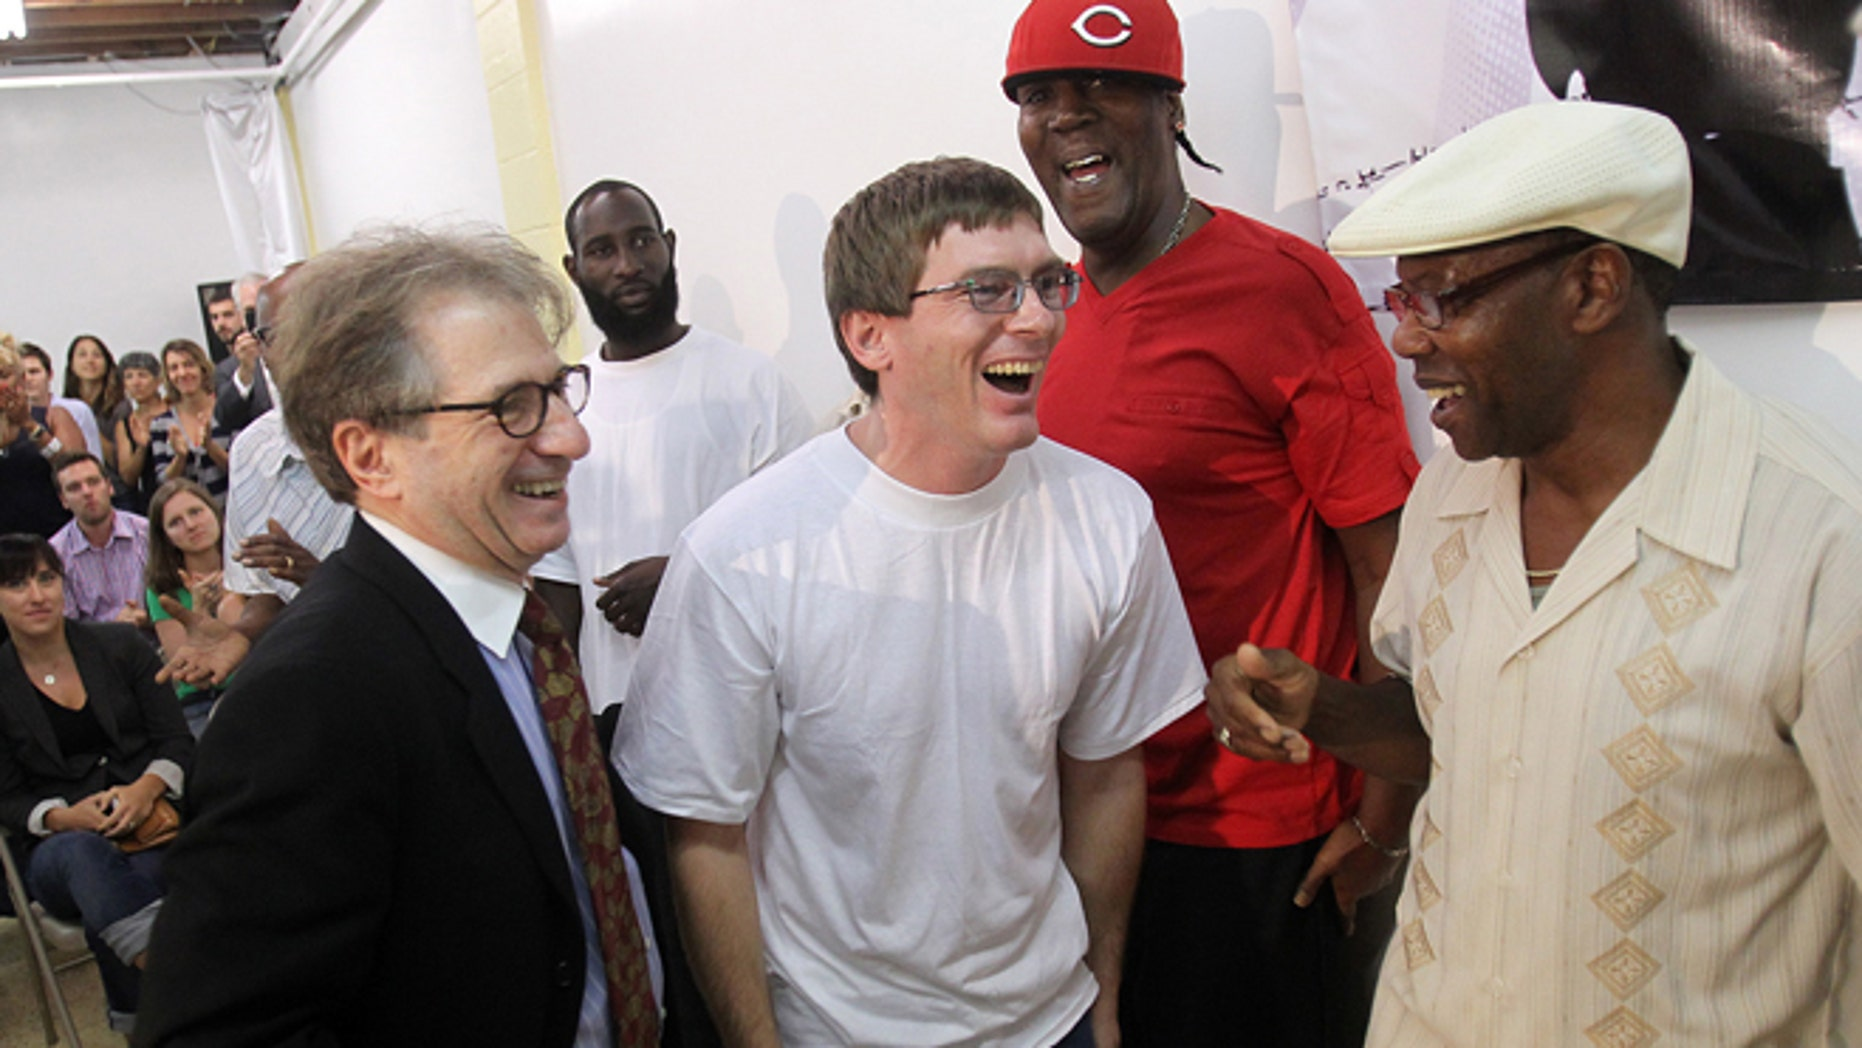 Sept 28: With attorney Barry Scheck, left, founder of the Innocence Project, at his side,  Damon Thibodeaux shares a laugh with previously exonerated men Derrick James, second from right, and Ricky Johnson  upon arrival at a press conference.